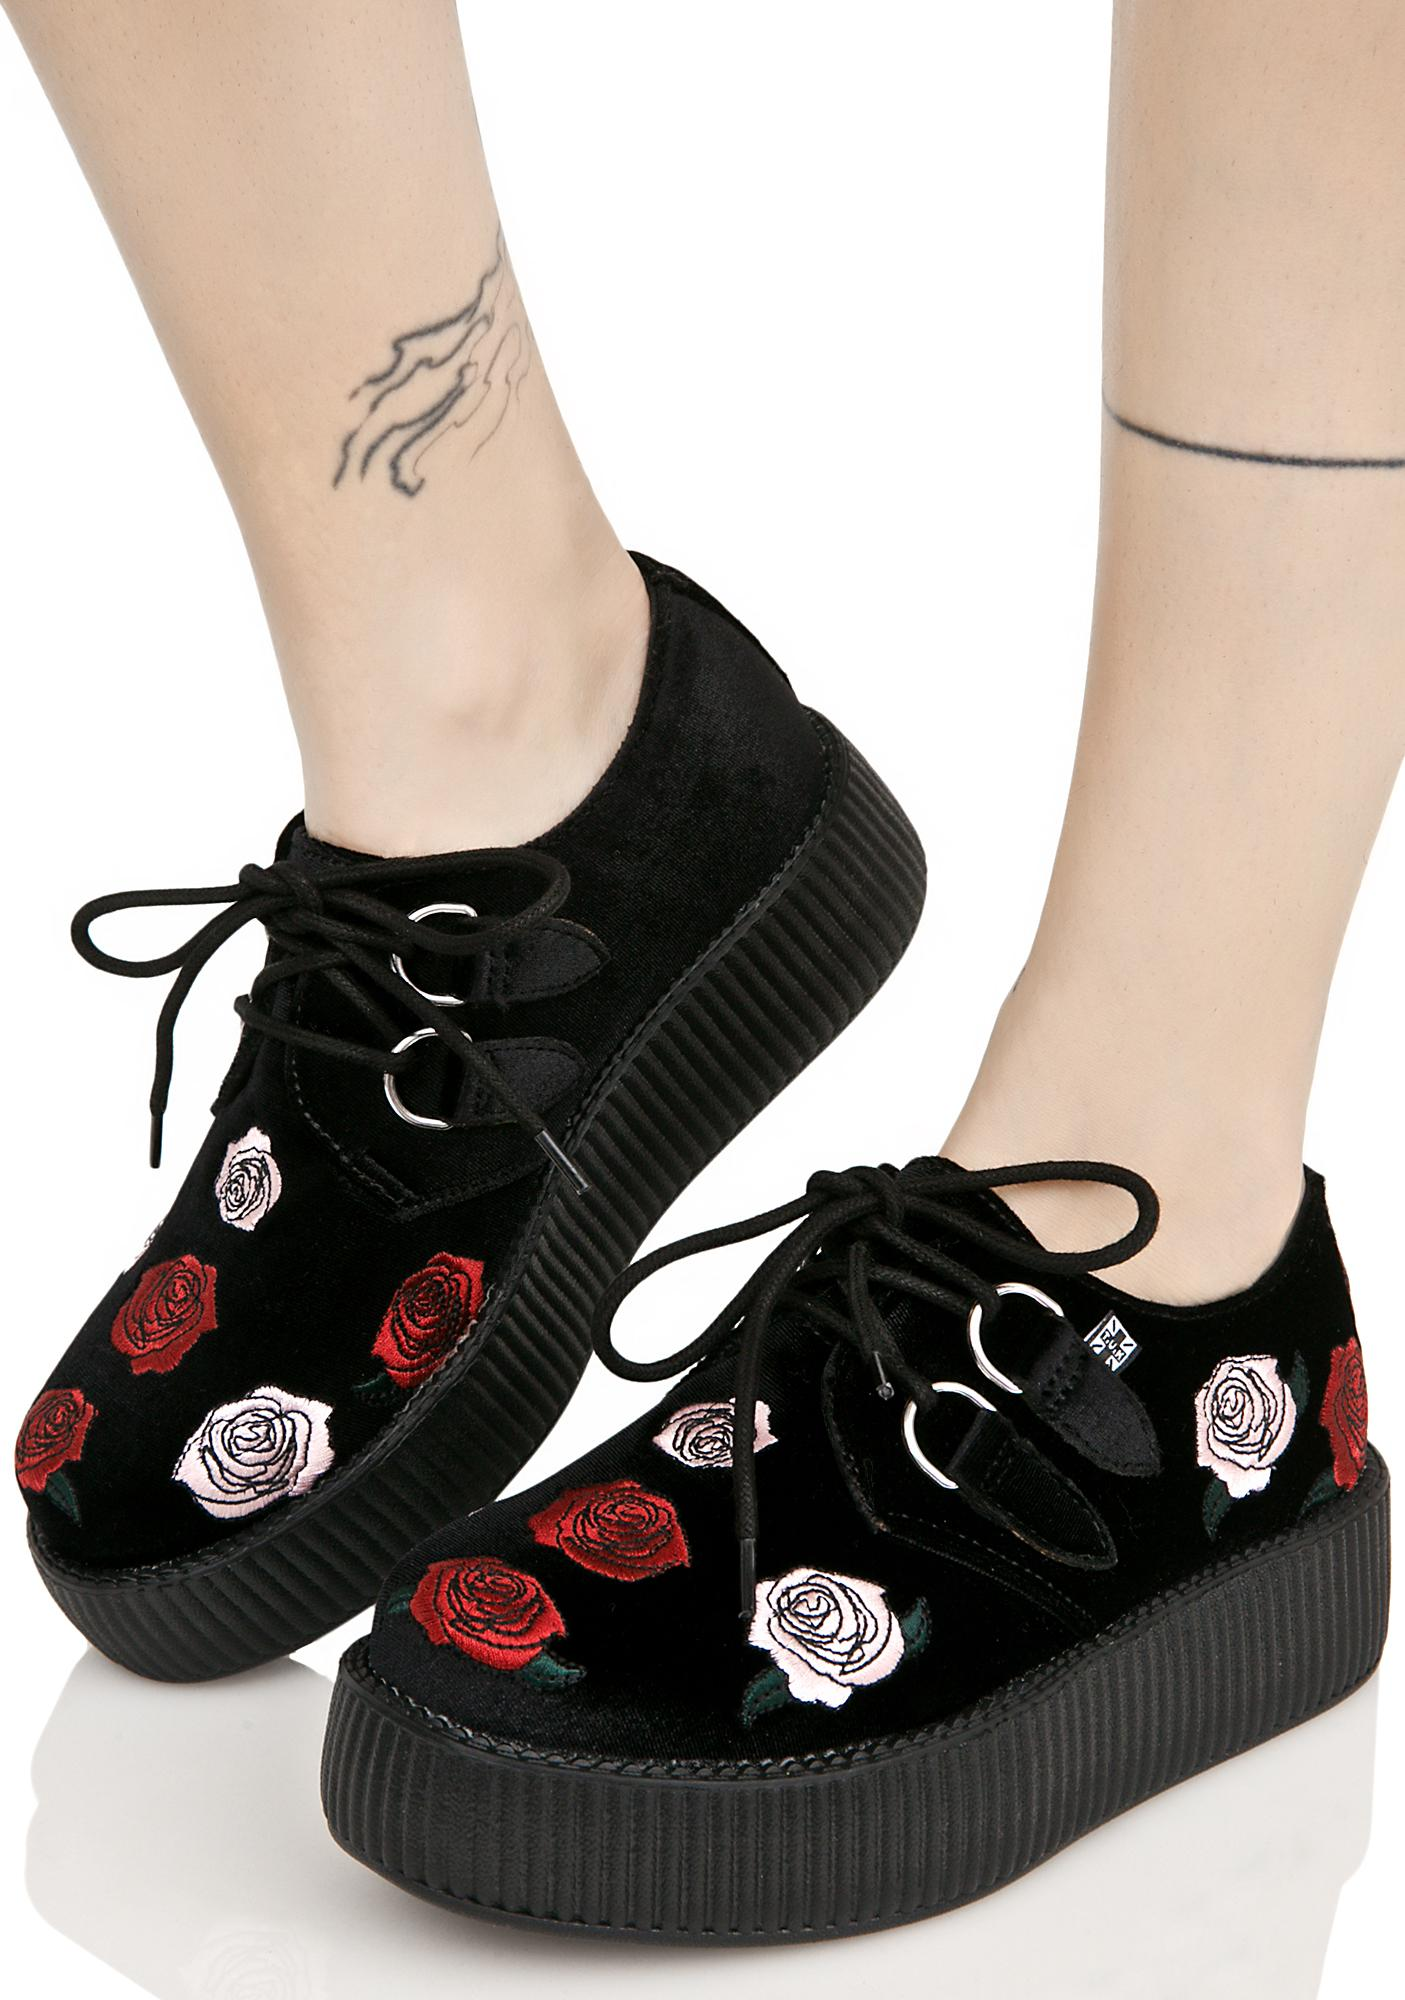 T.U.K. Black Velvet Creepers With Roses